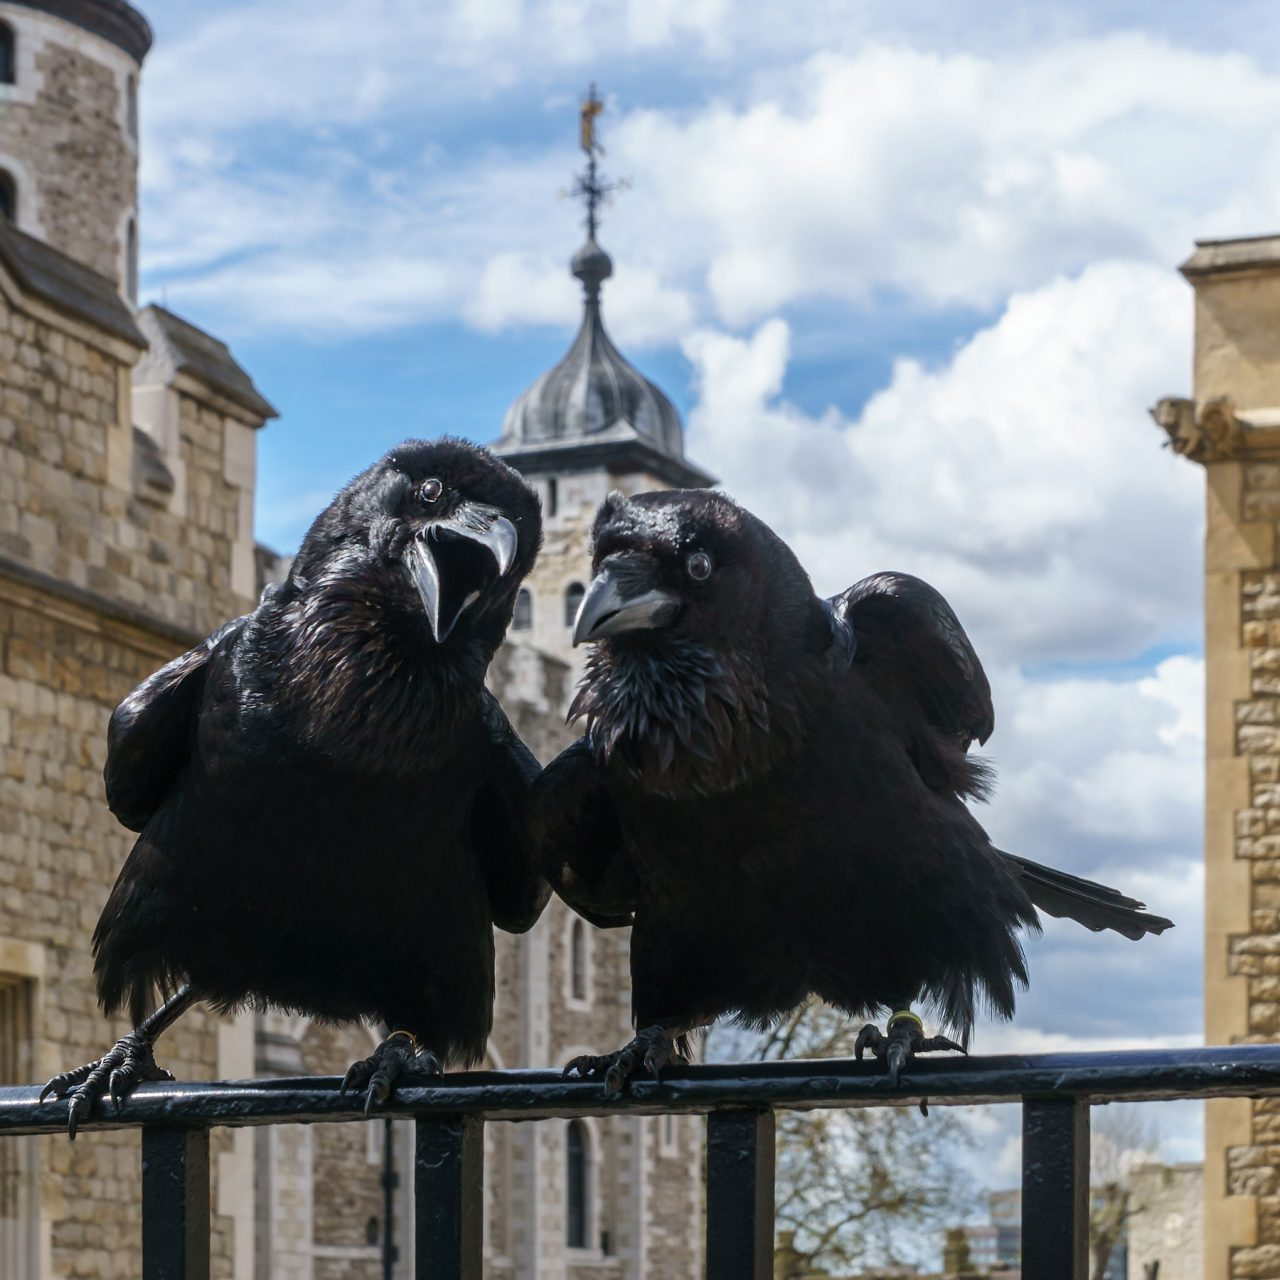 Jubilee and Munin, two of the ravens at the Tower of London (Photo: © User:Colin/Wikimedia Commons)